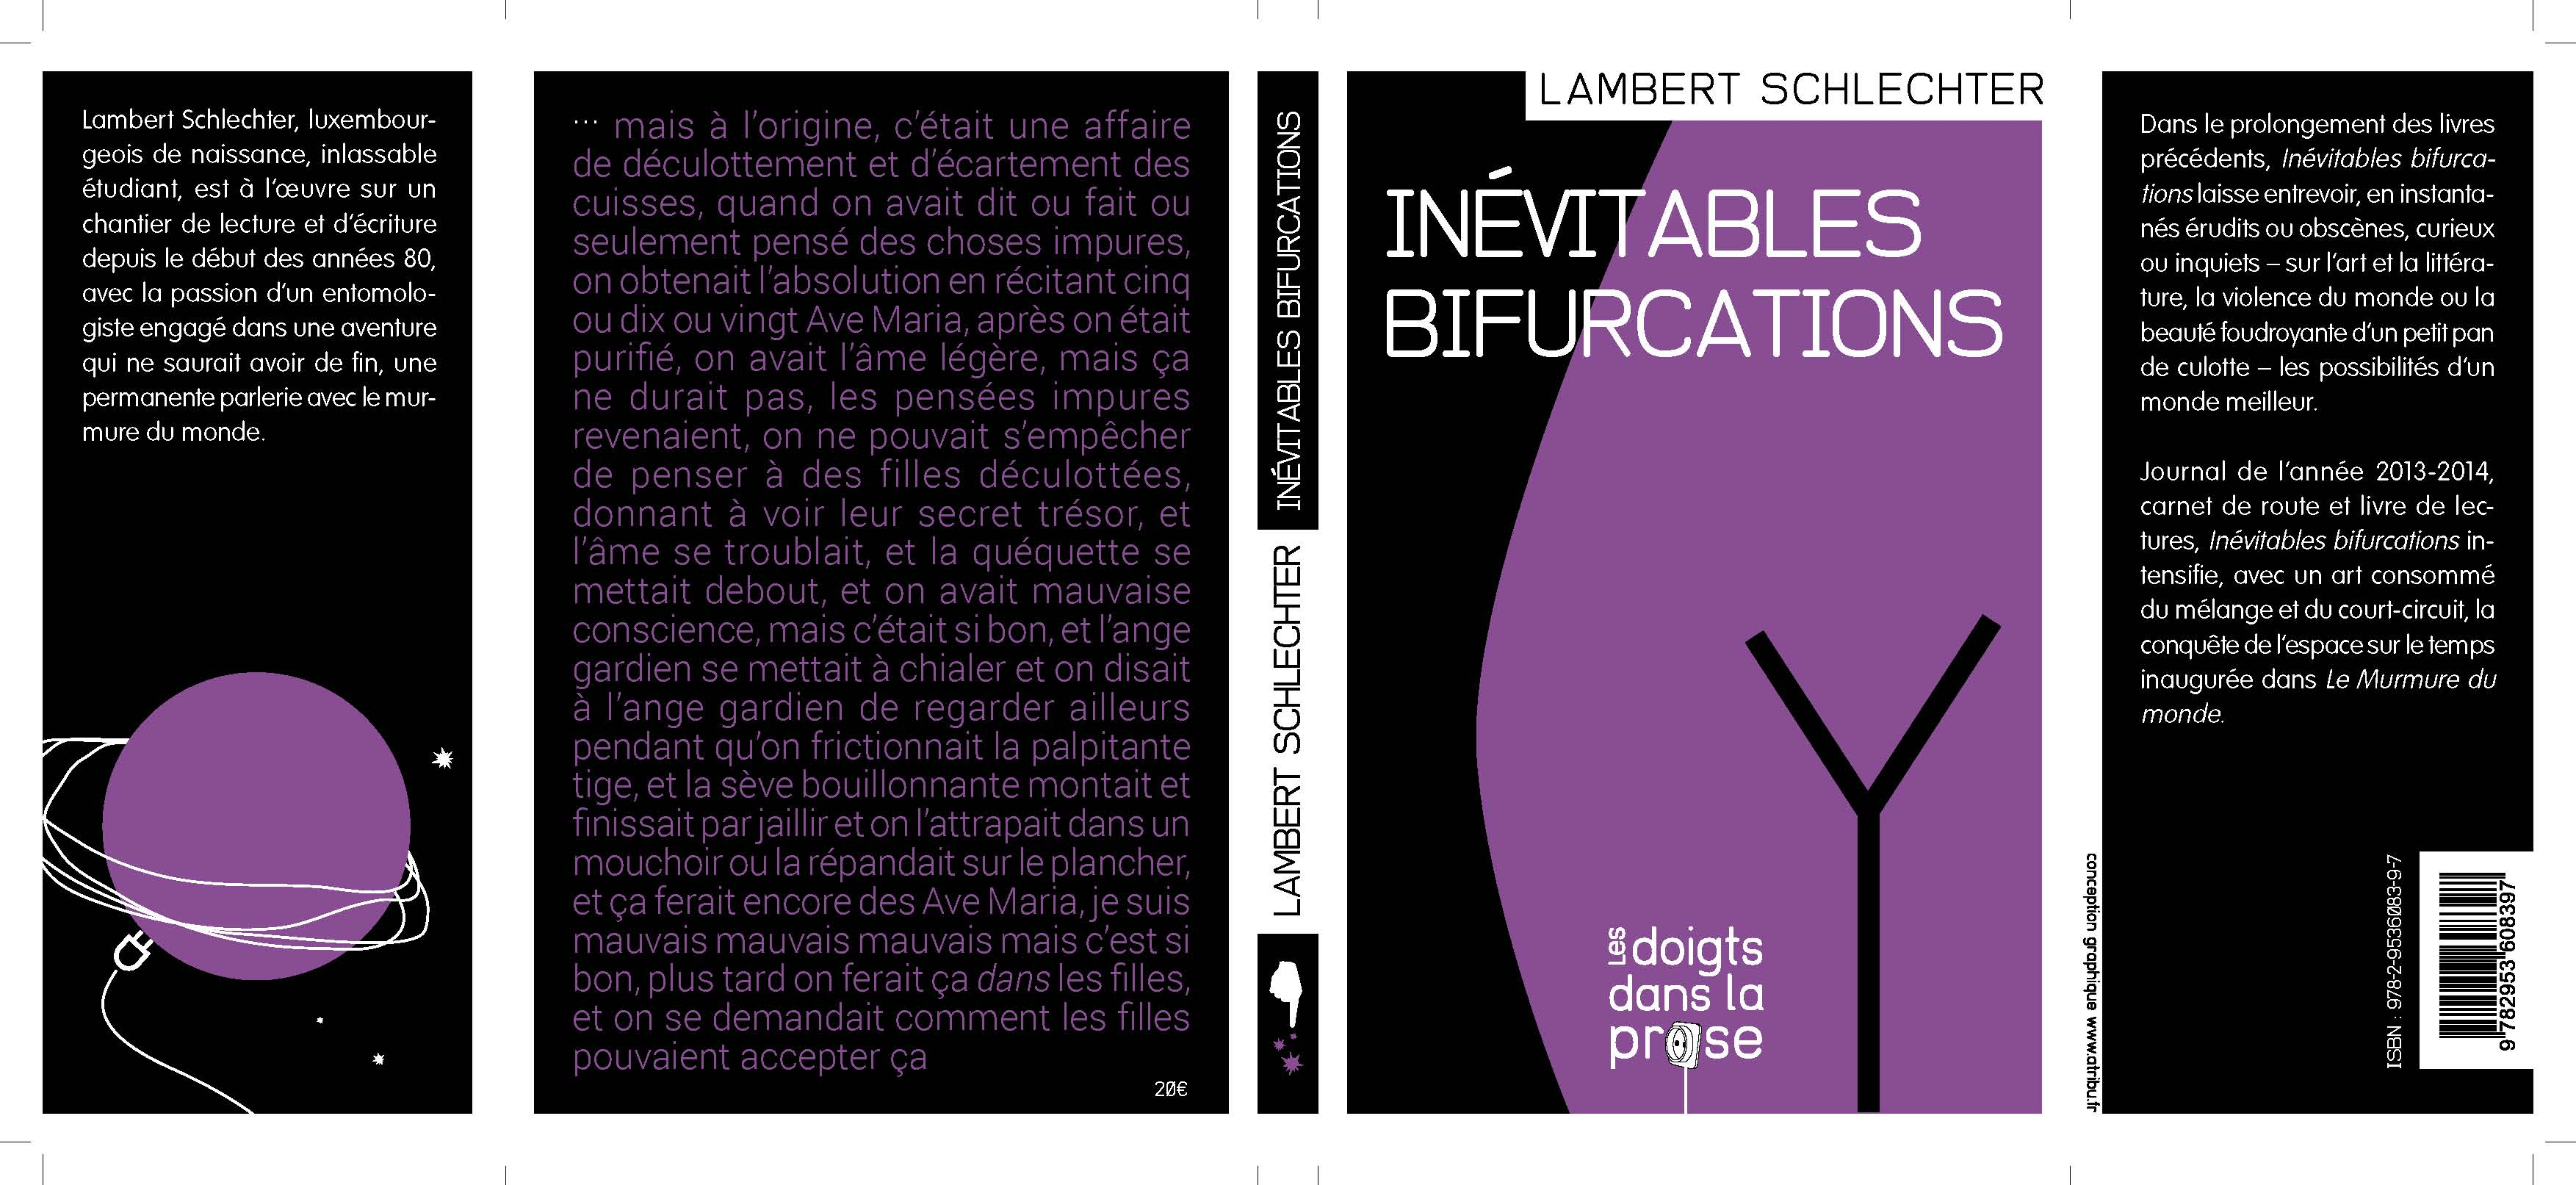 Bifurcations-couverture+rabats_9avril16